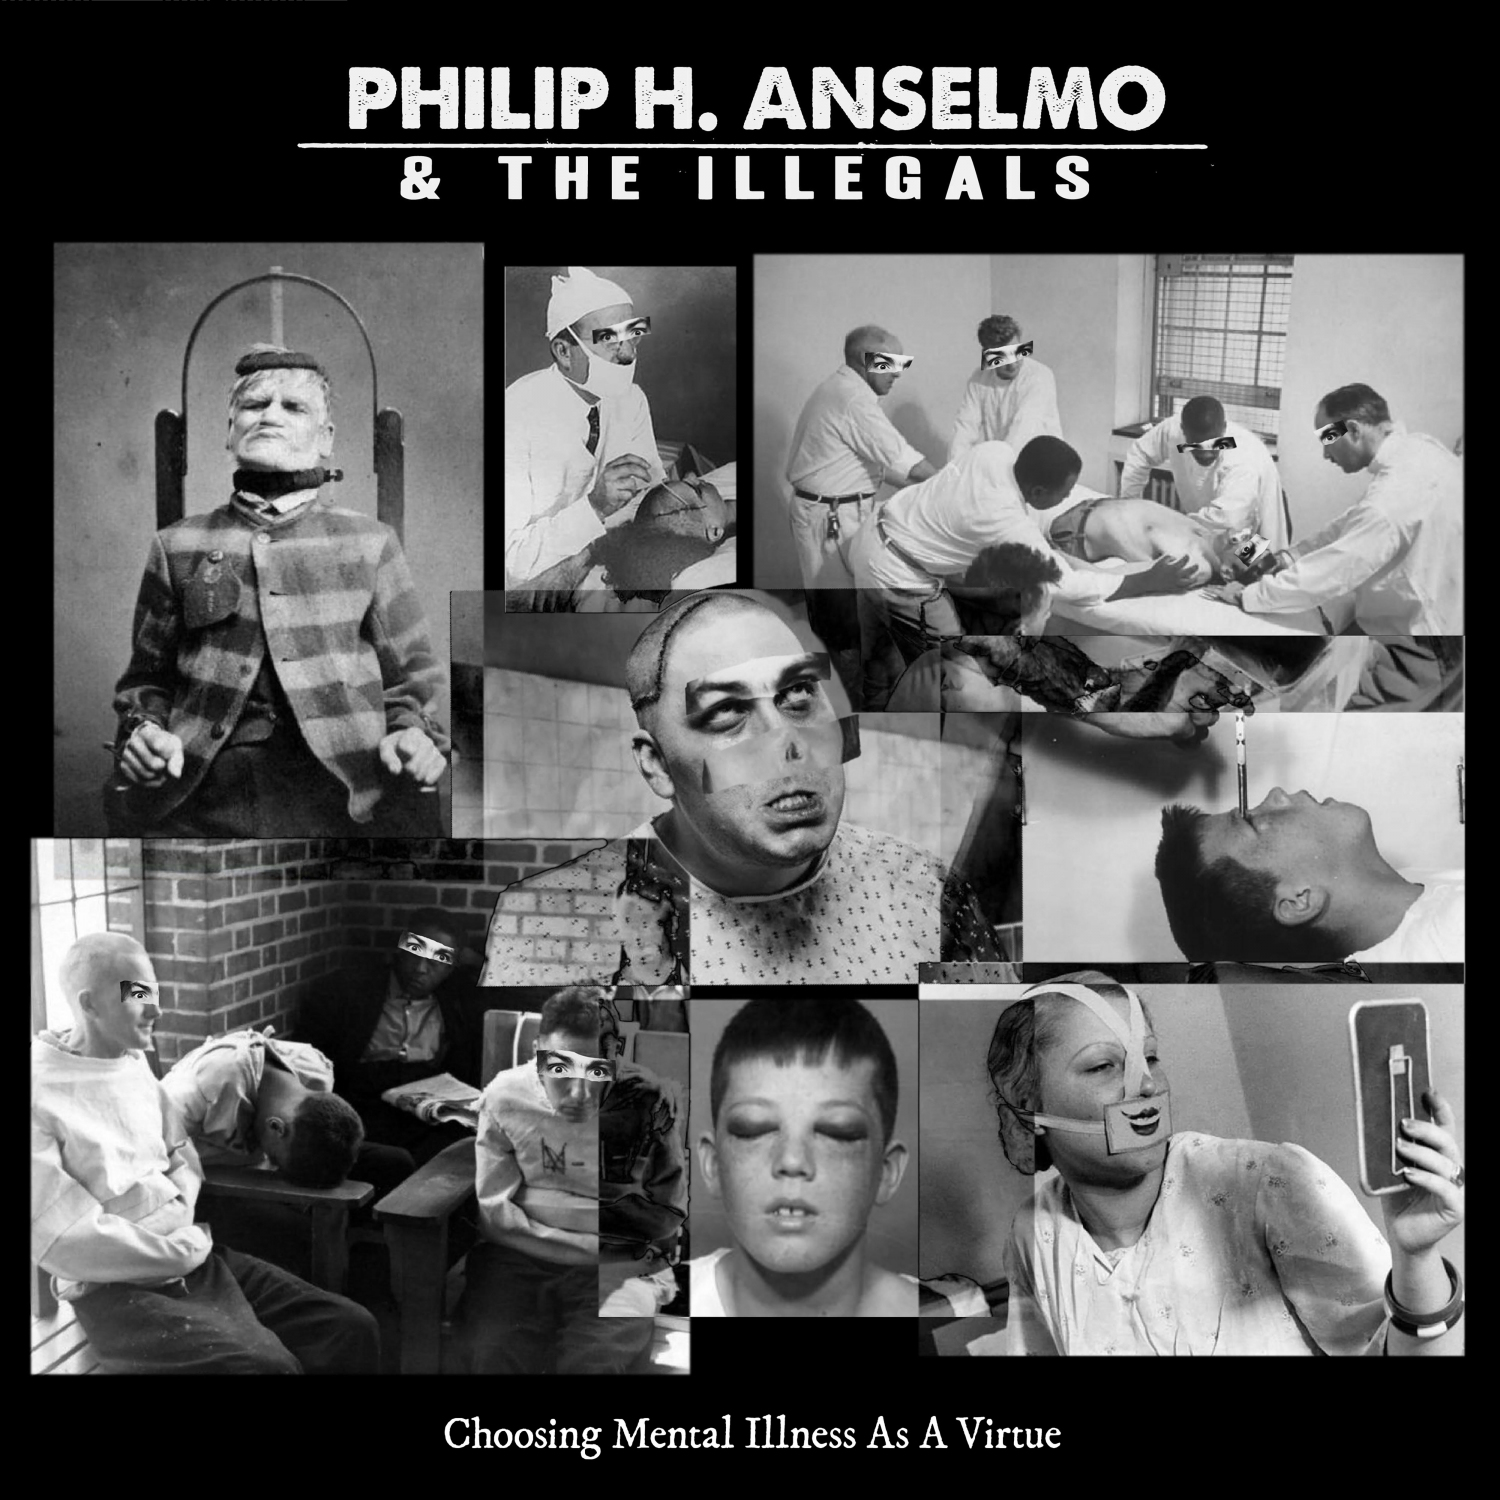 PHIL H. ANSELMO & THE ILLEGALS